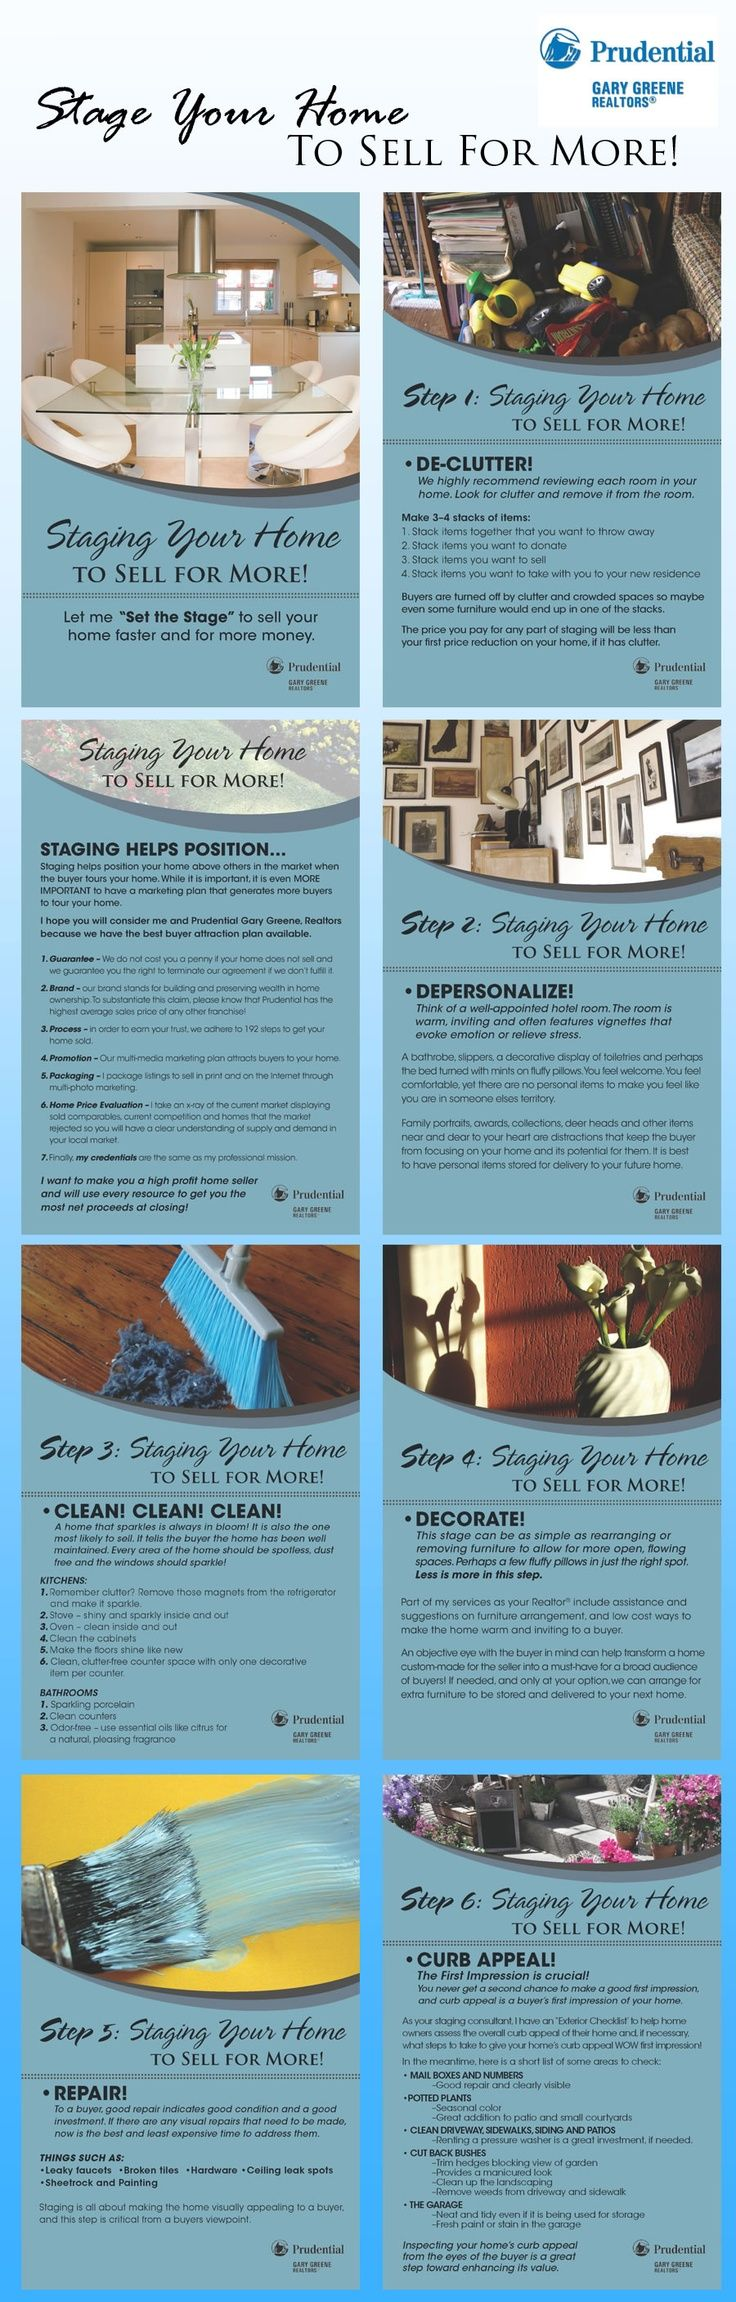 Staging your home when you want to sell increases the chance of not only selling quickly but getting the offer you want! Check out these tips!